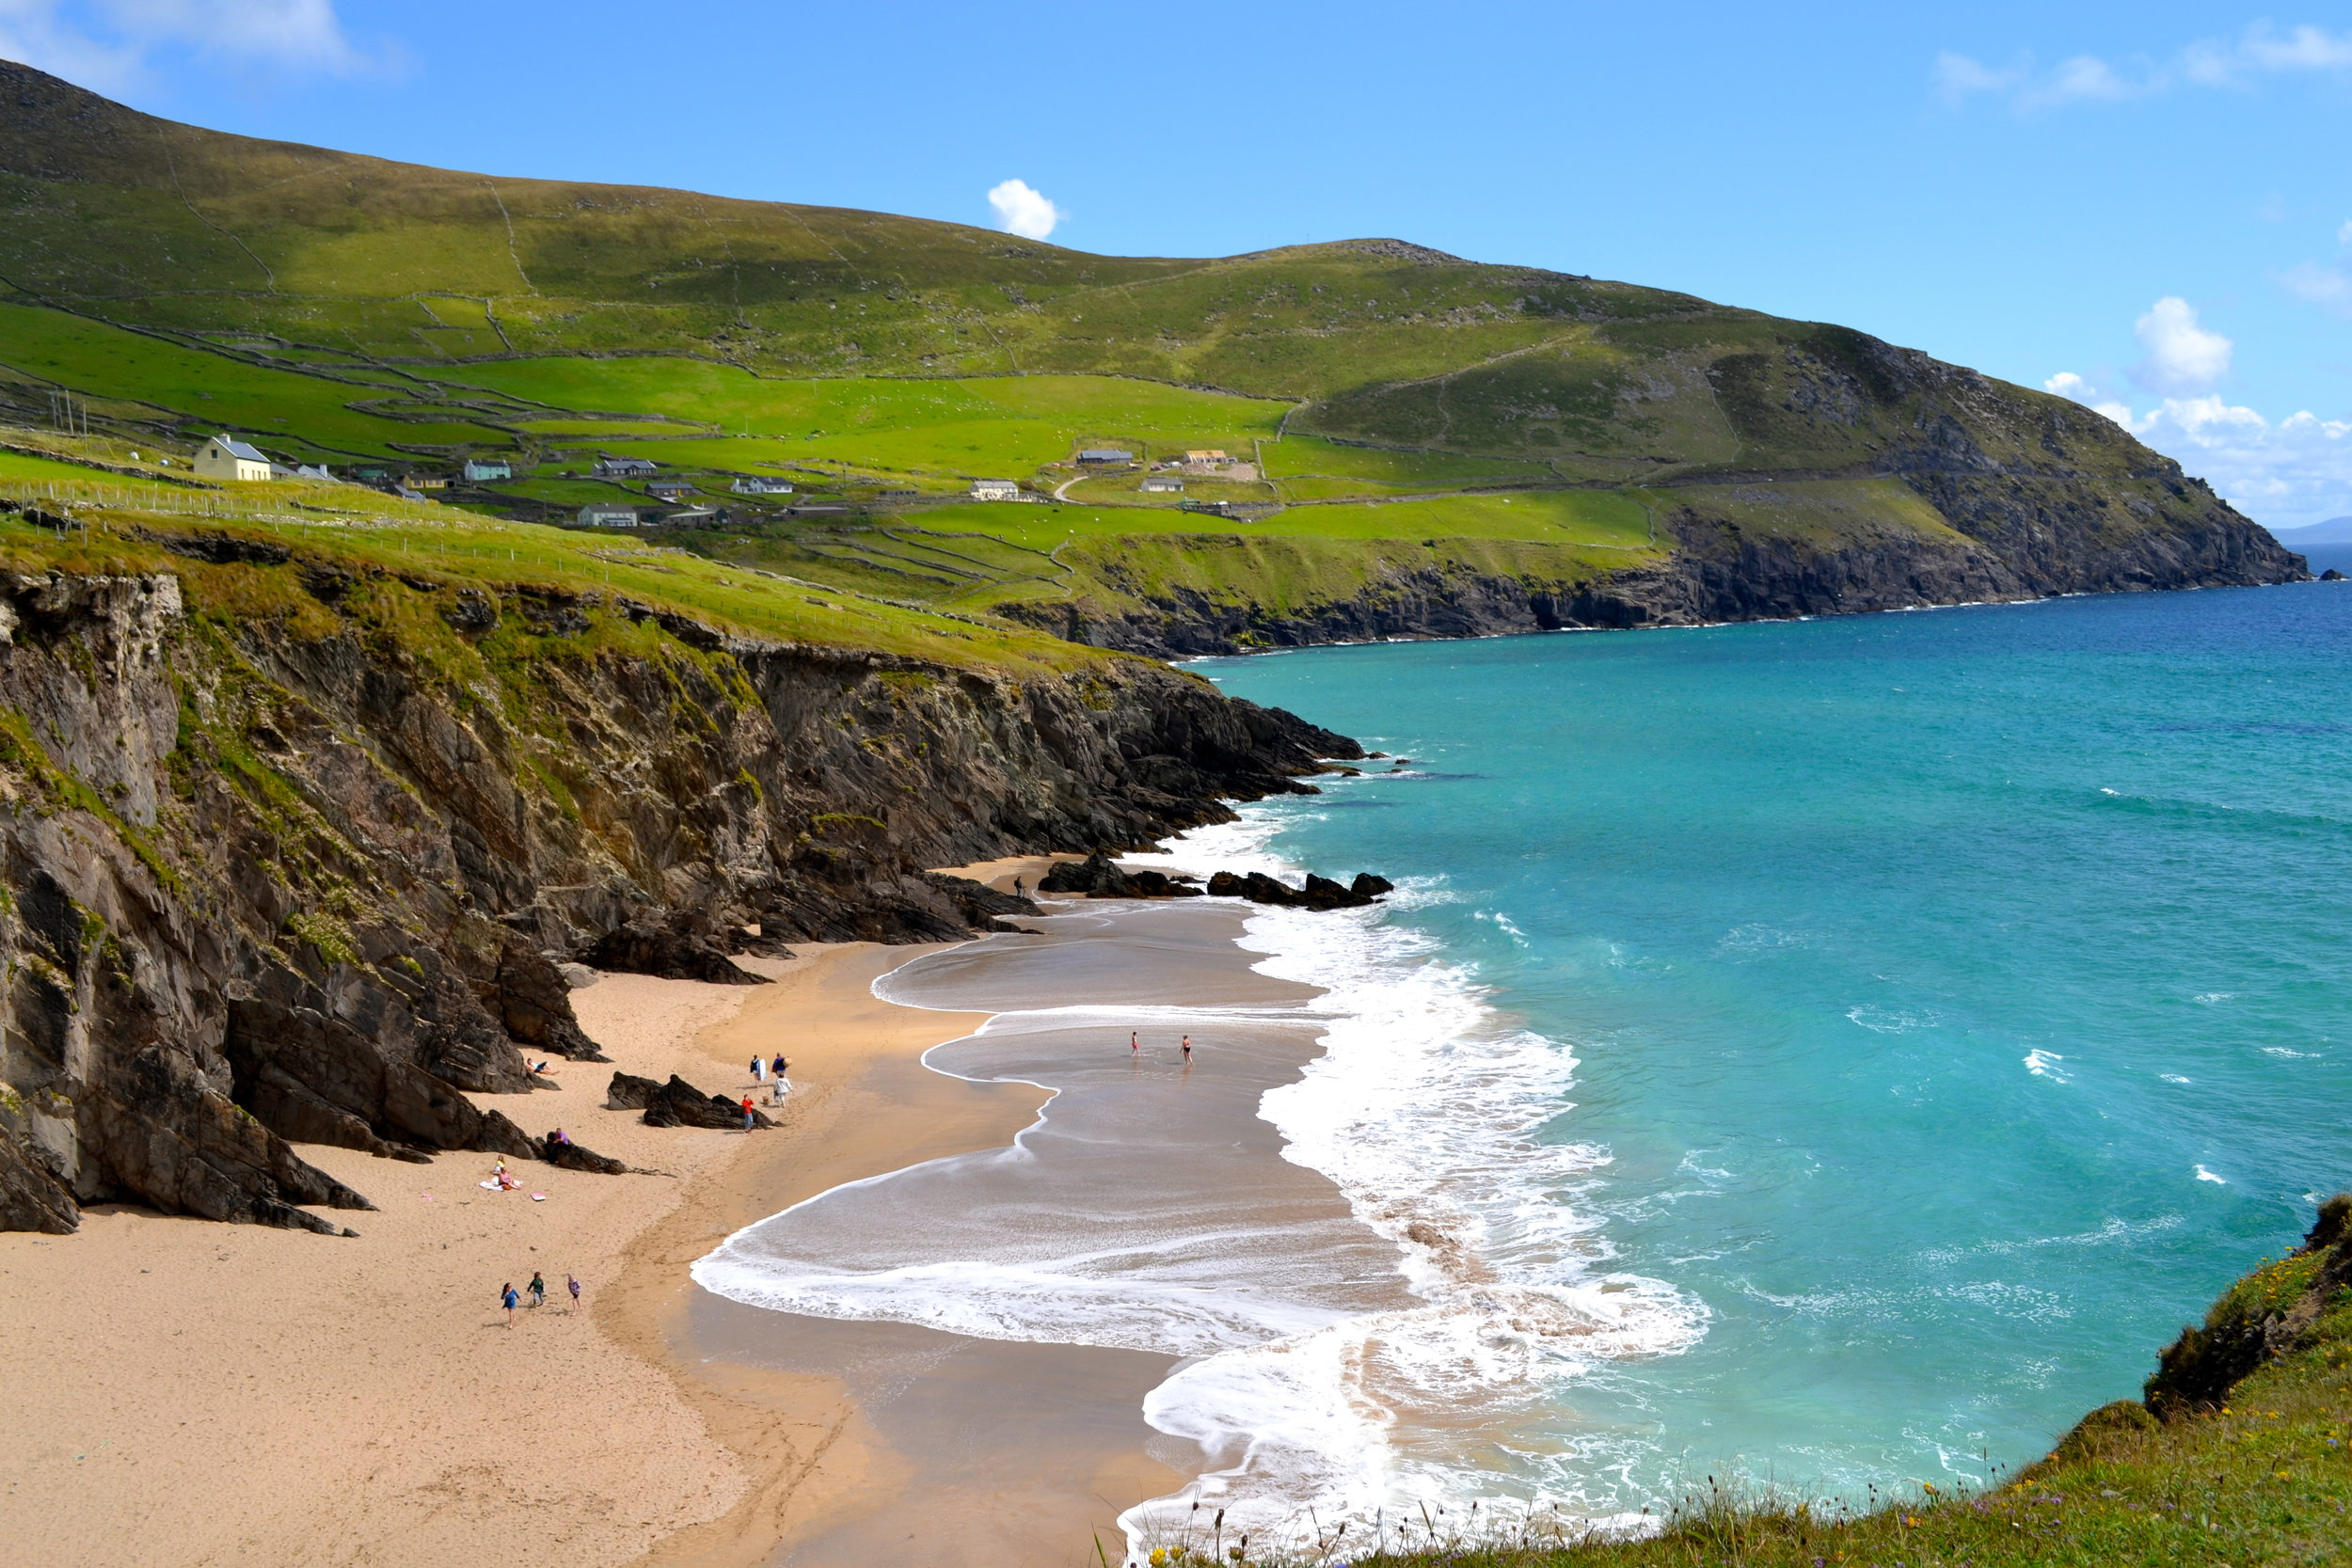 On a sunny day in Ireland, the beaches can be absolutely spectacular! Don't forget your swimsuit.